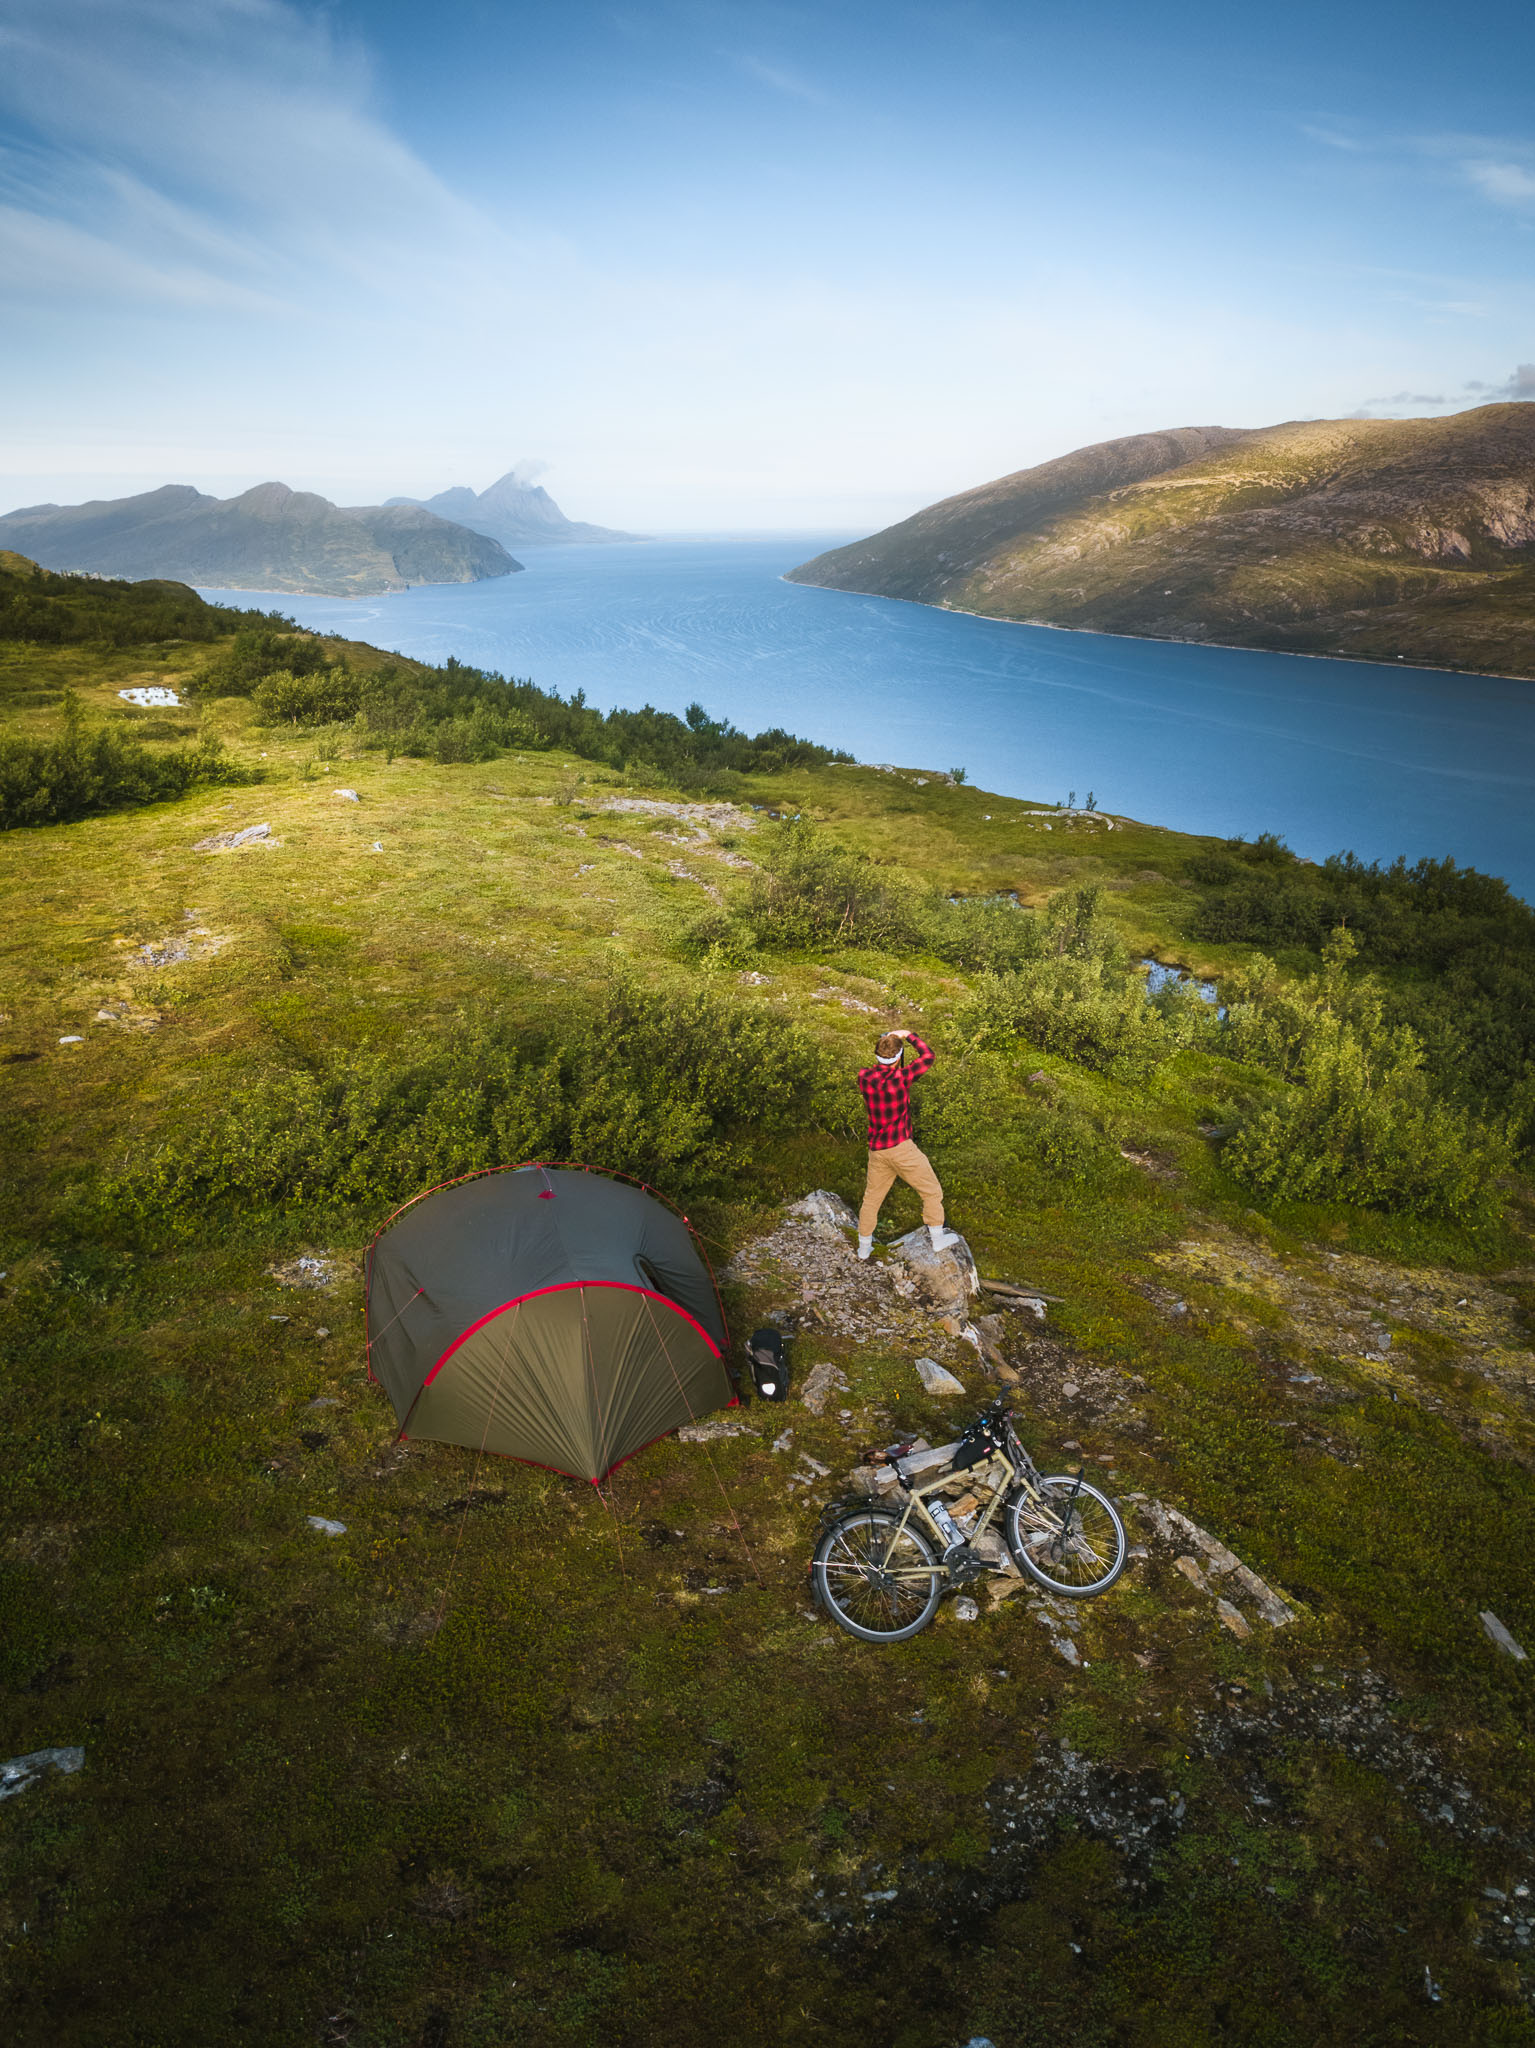 Camping above the fjord